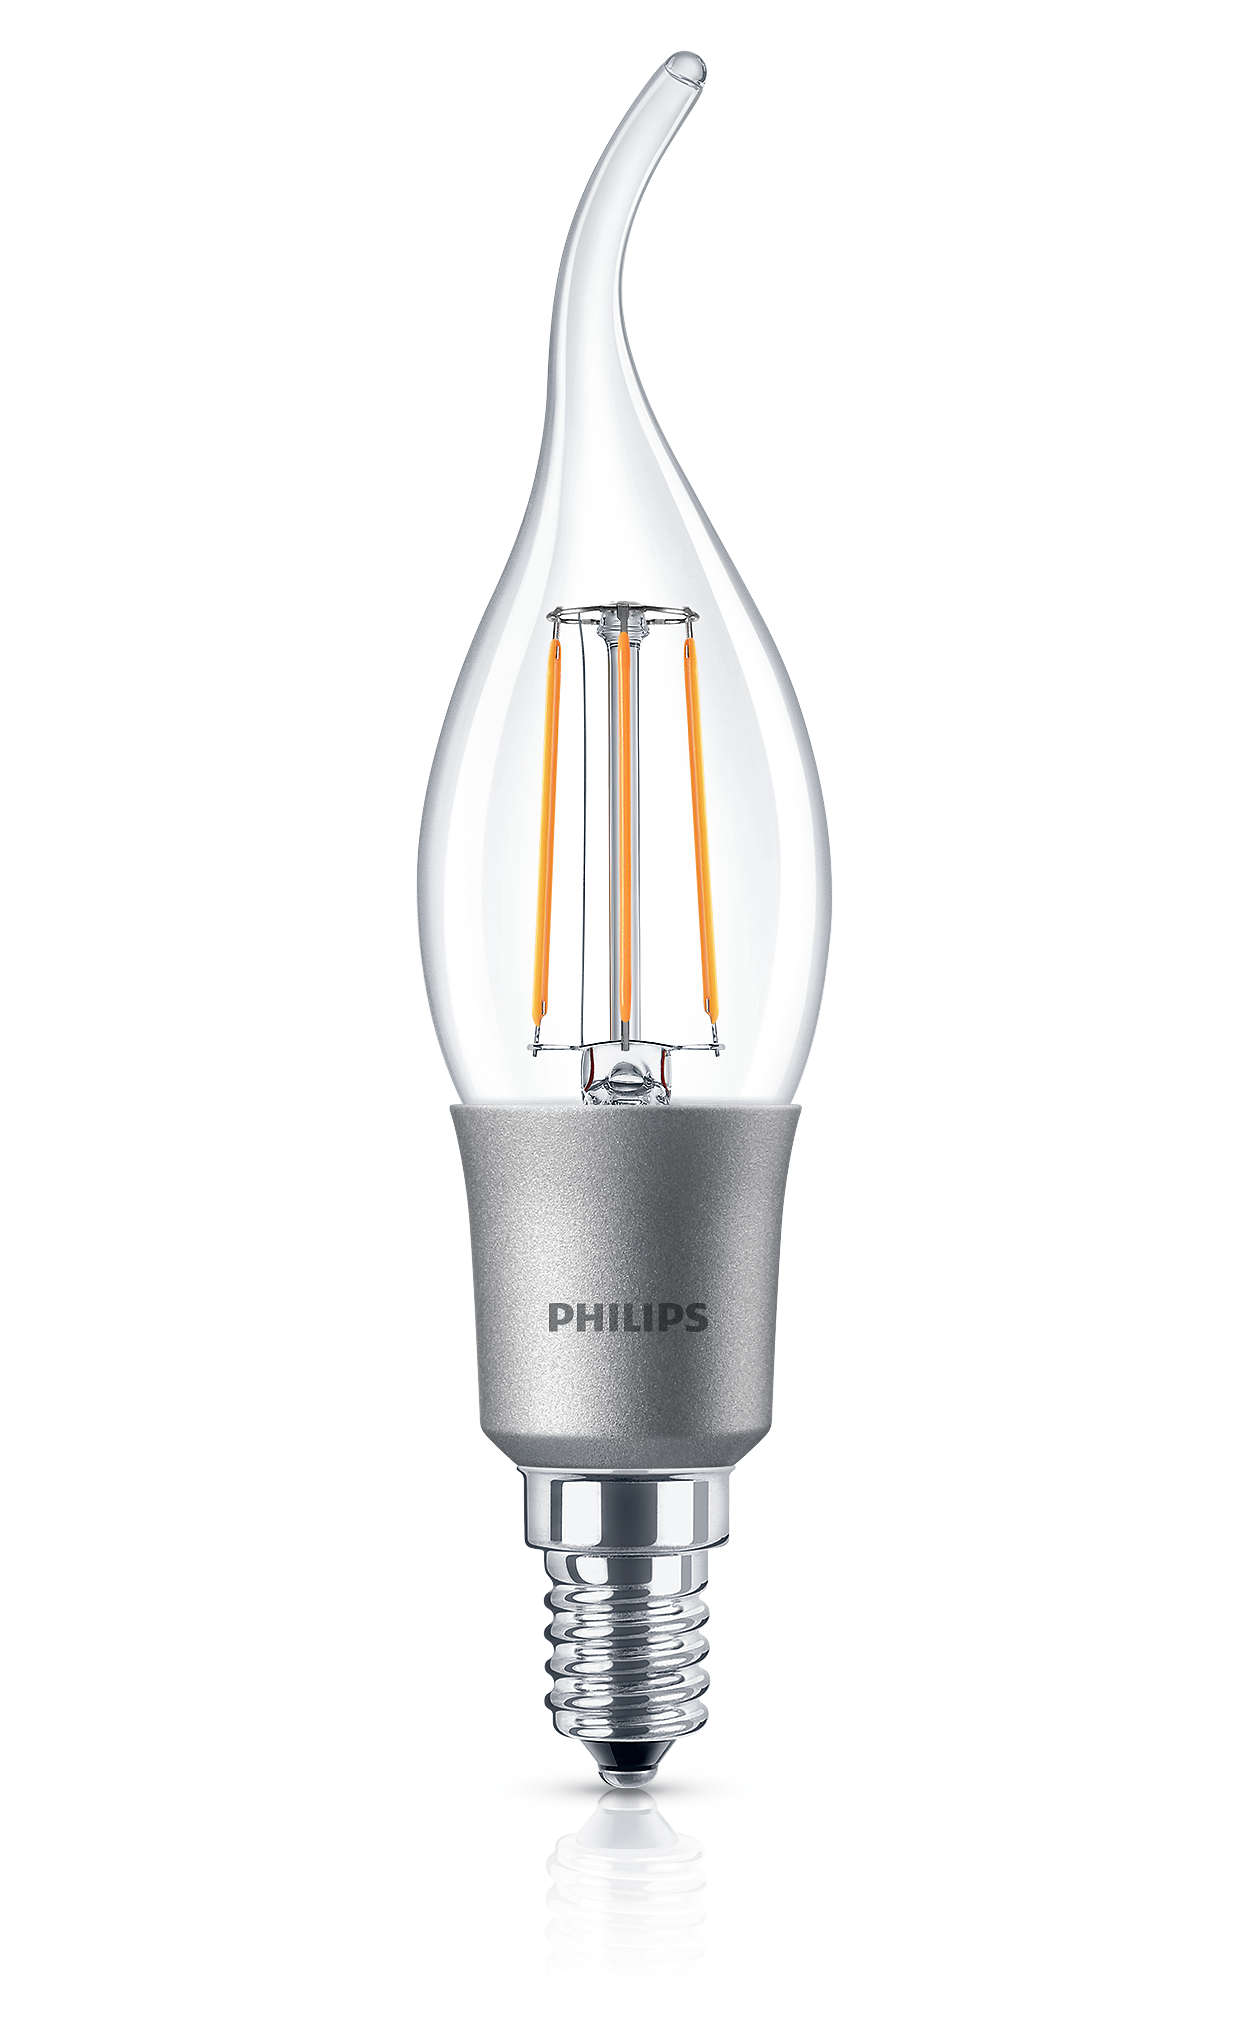 philips led classic 40w dimmable e14 warm white bent tip candle light bulb 470lm ebay. Black Bedroom Furniture Sets. Home Design Ideas